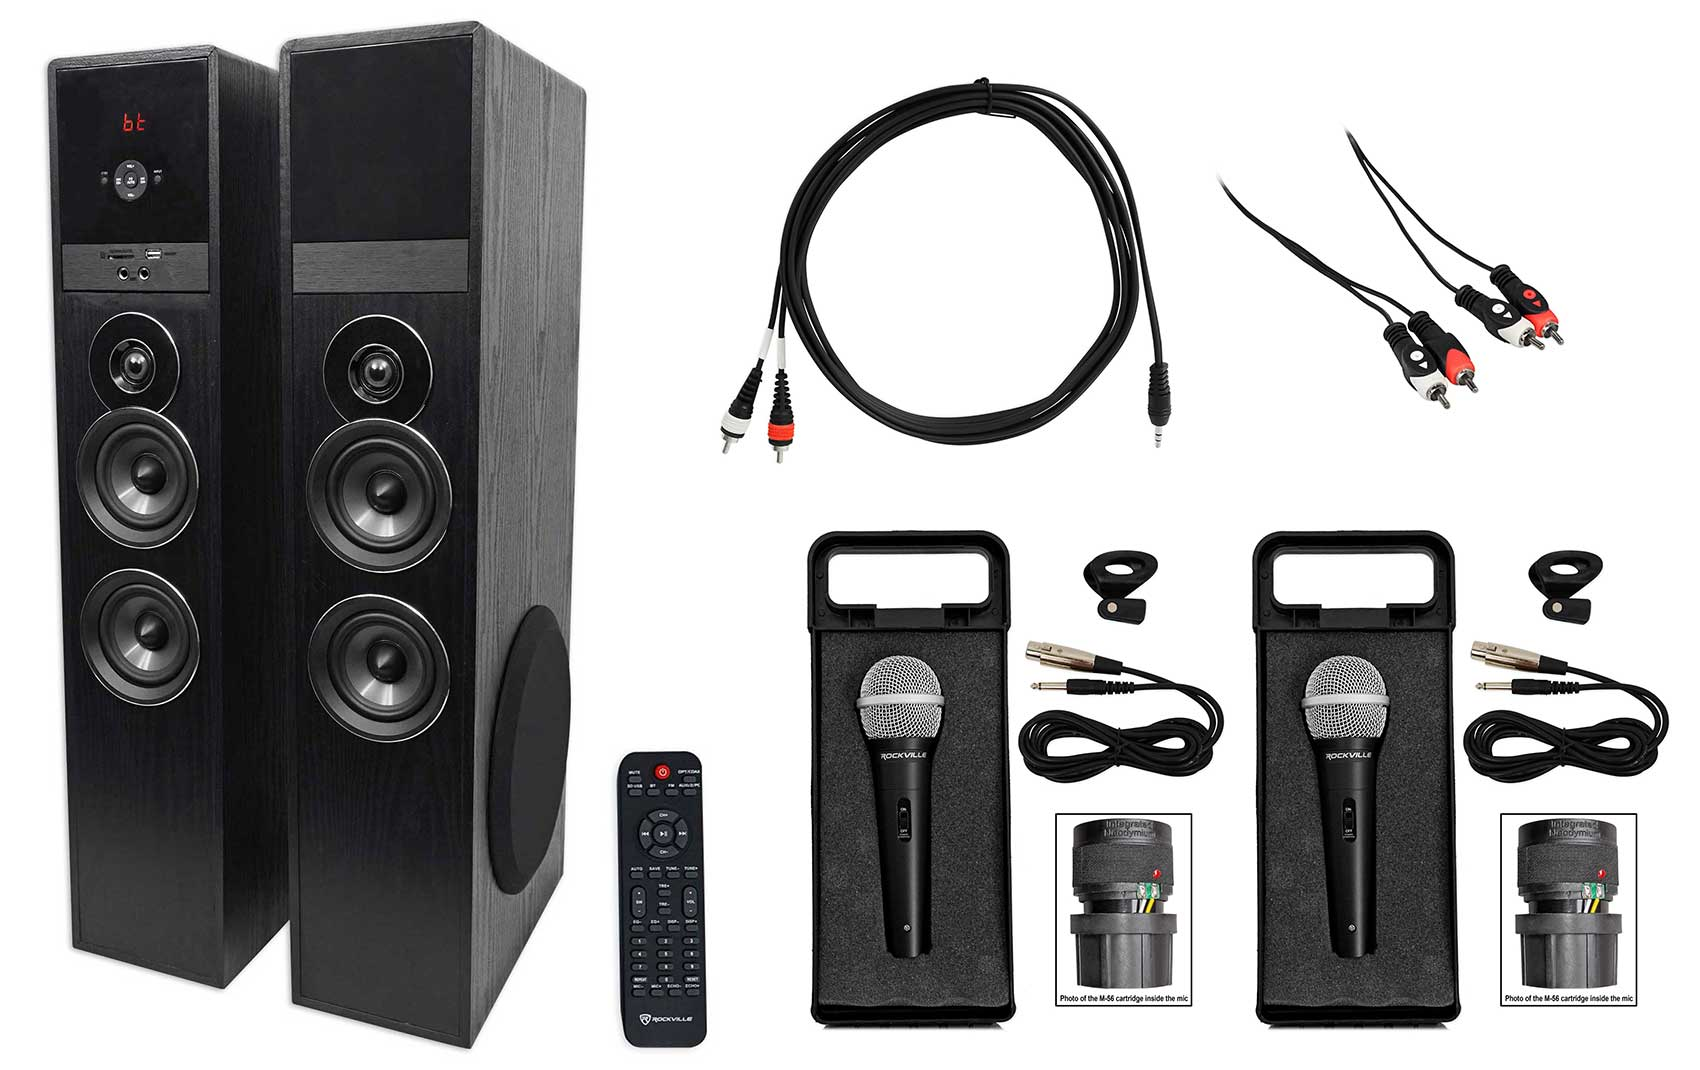 Rockville All-in-one Bluetooth Home Theater Karaoke Machine System w (2) Mics by ROCKVILLE